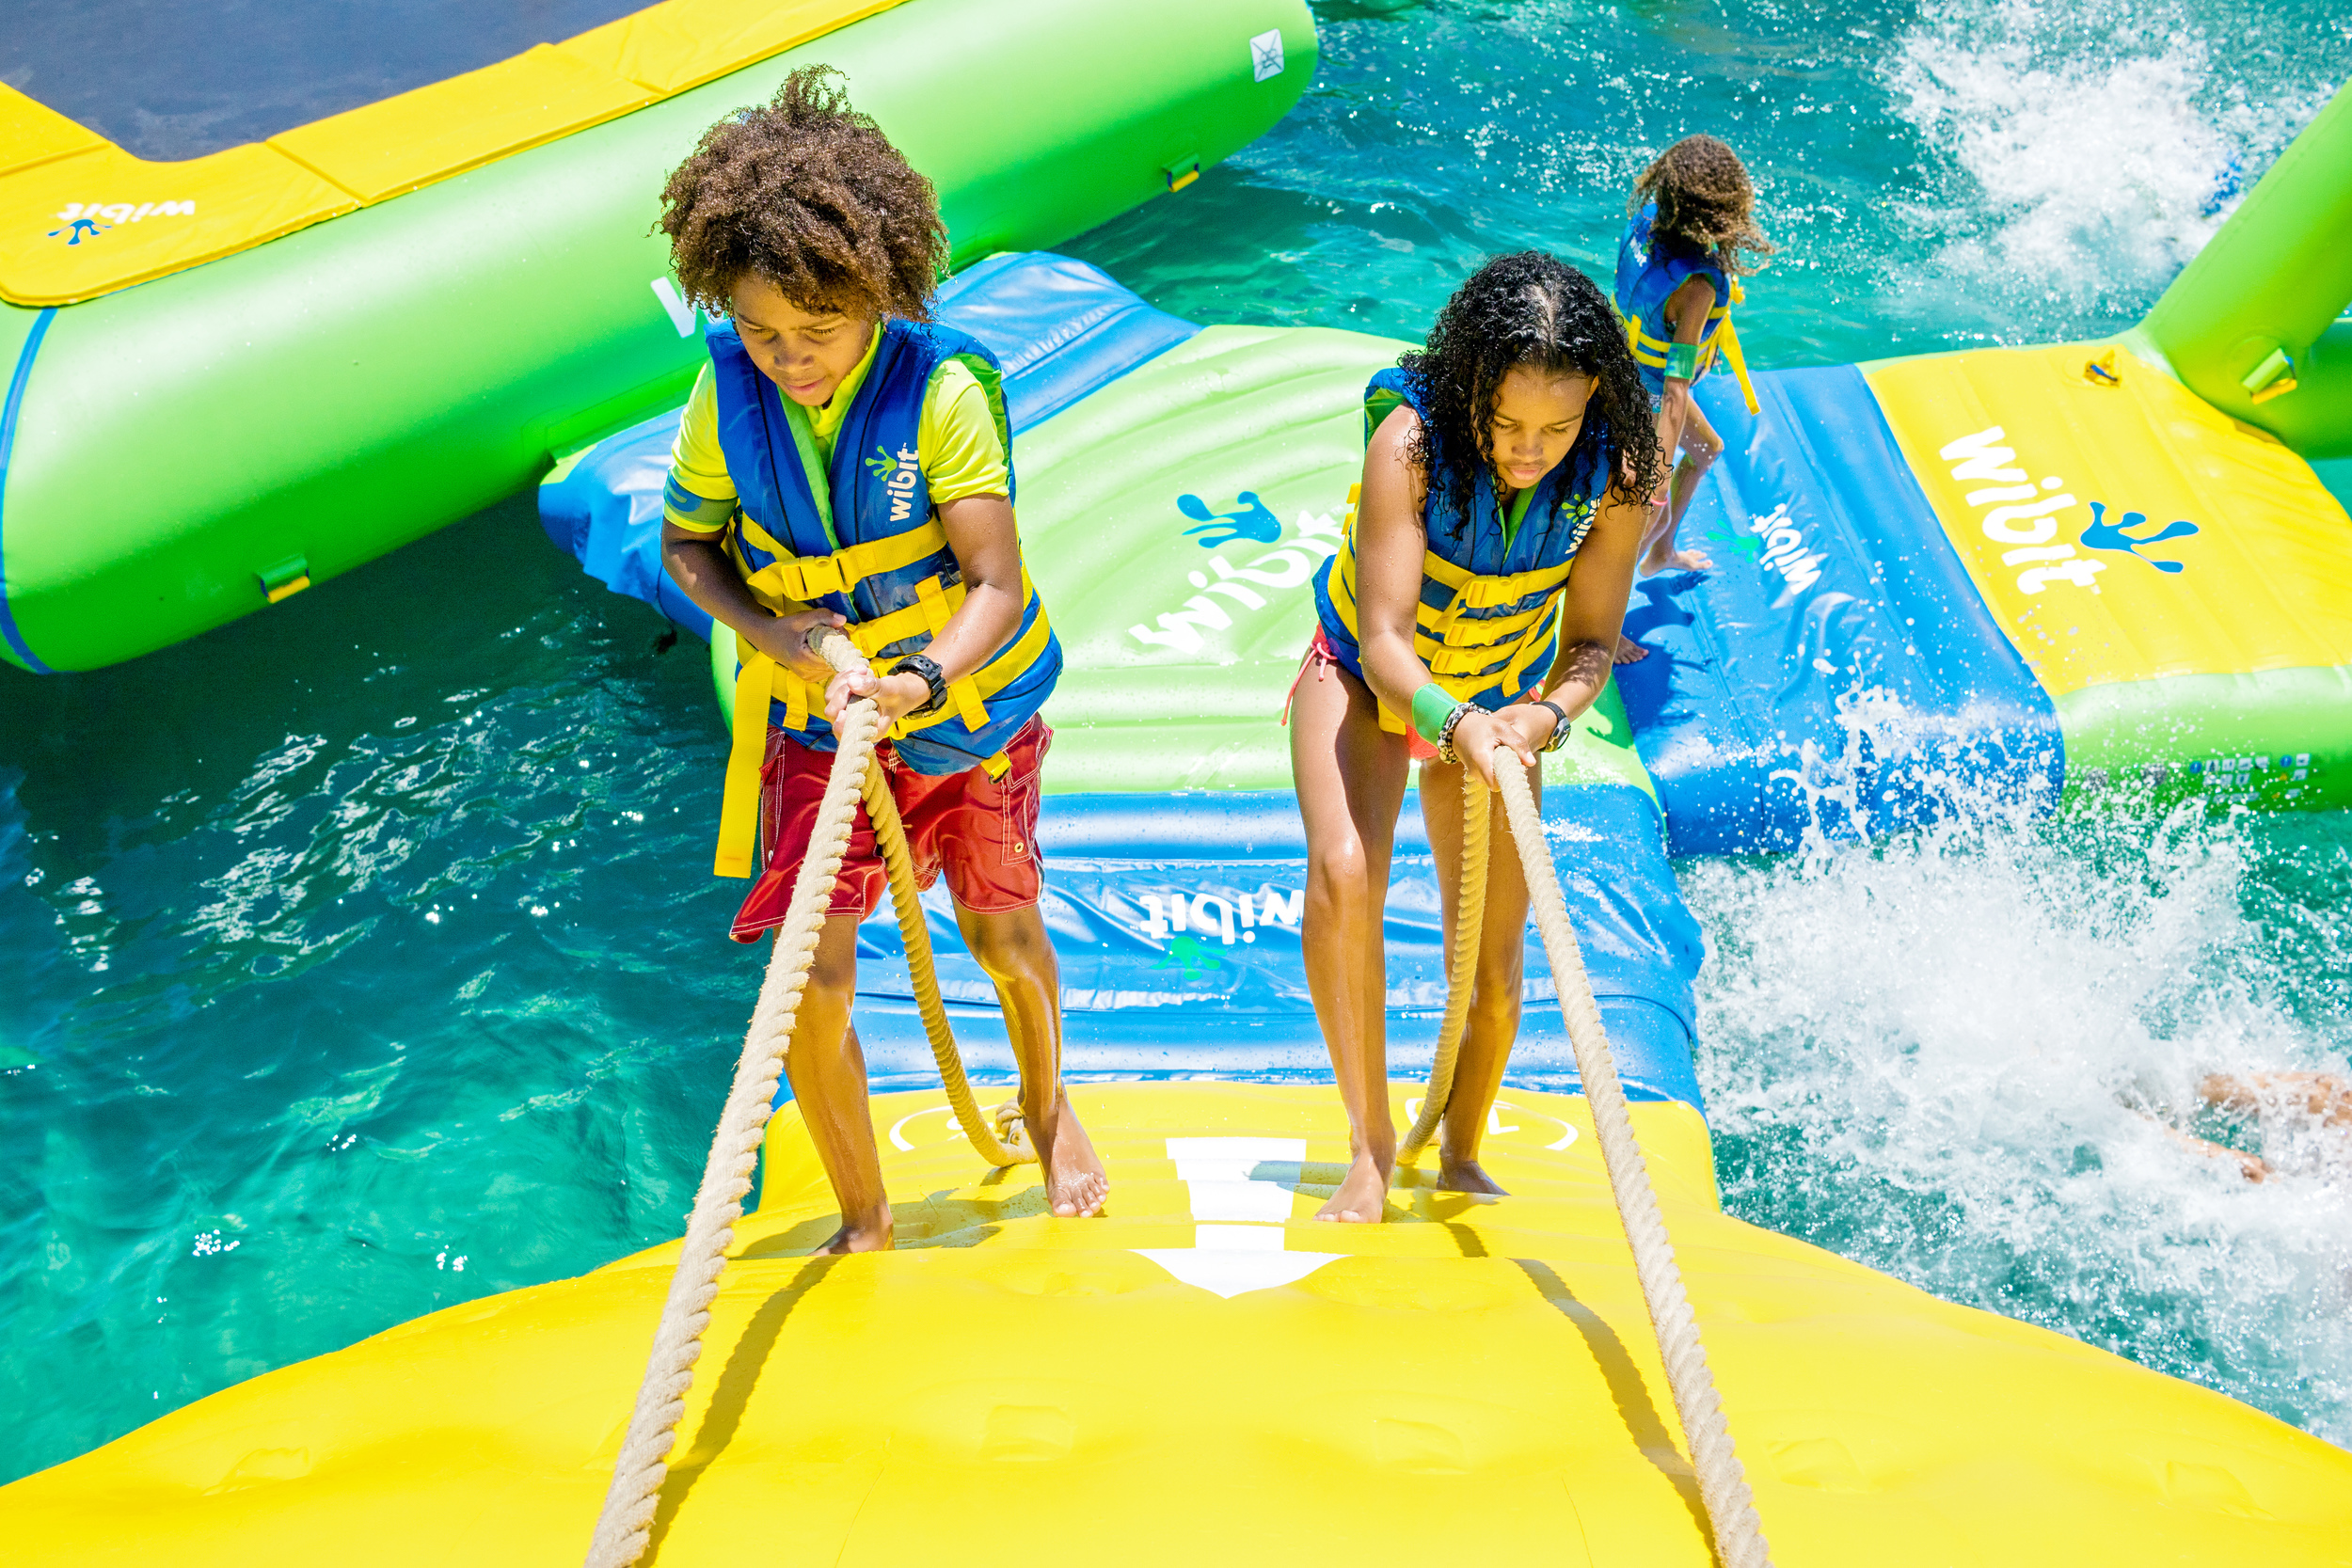 The Action Tower at Splash Island Water Park St. Lucia